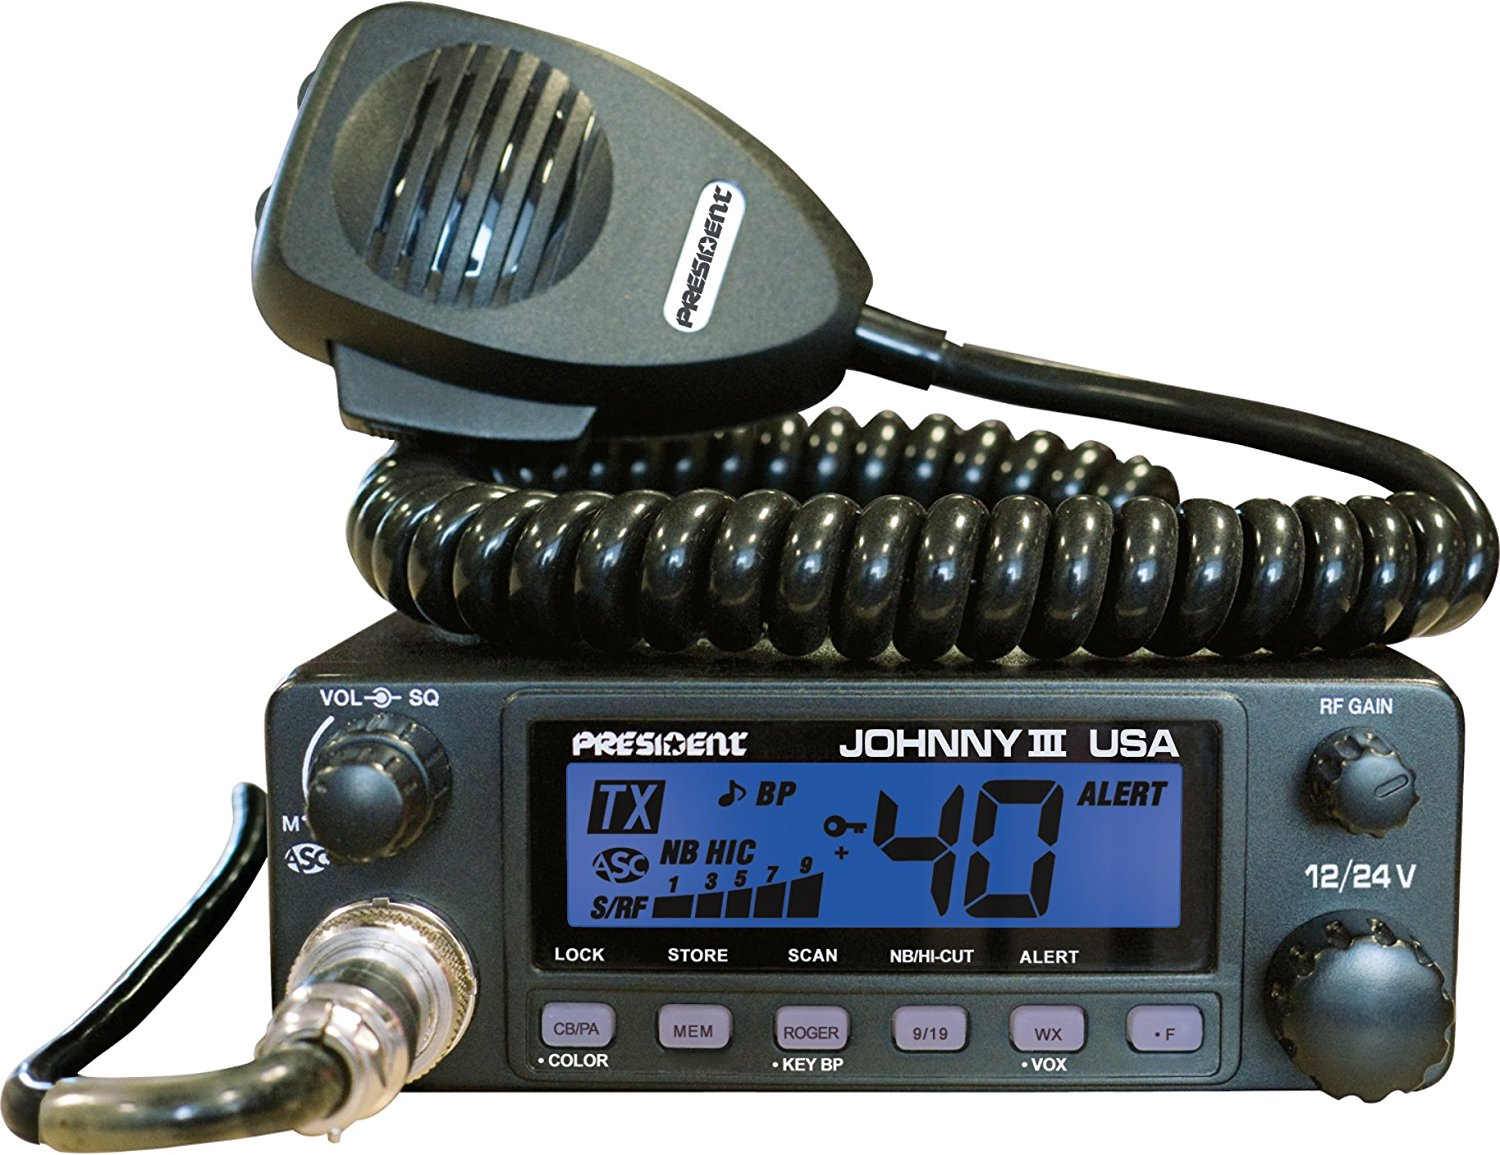 Best 3 President CB Radio Reviews 2019 : Guide to the Top CB Brand